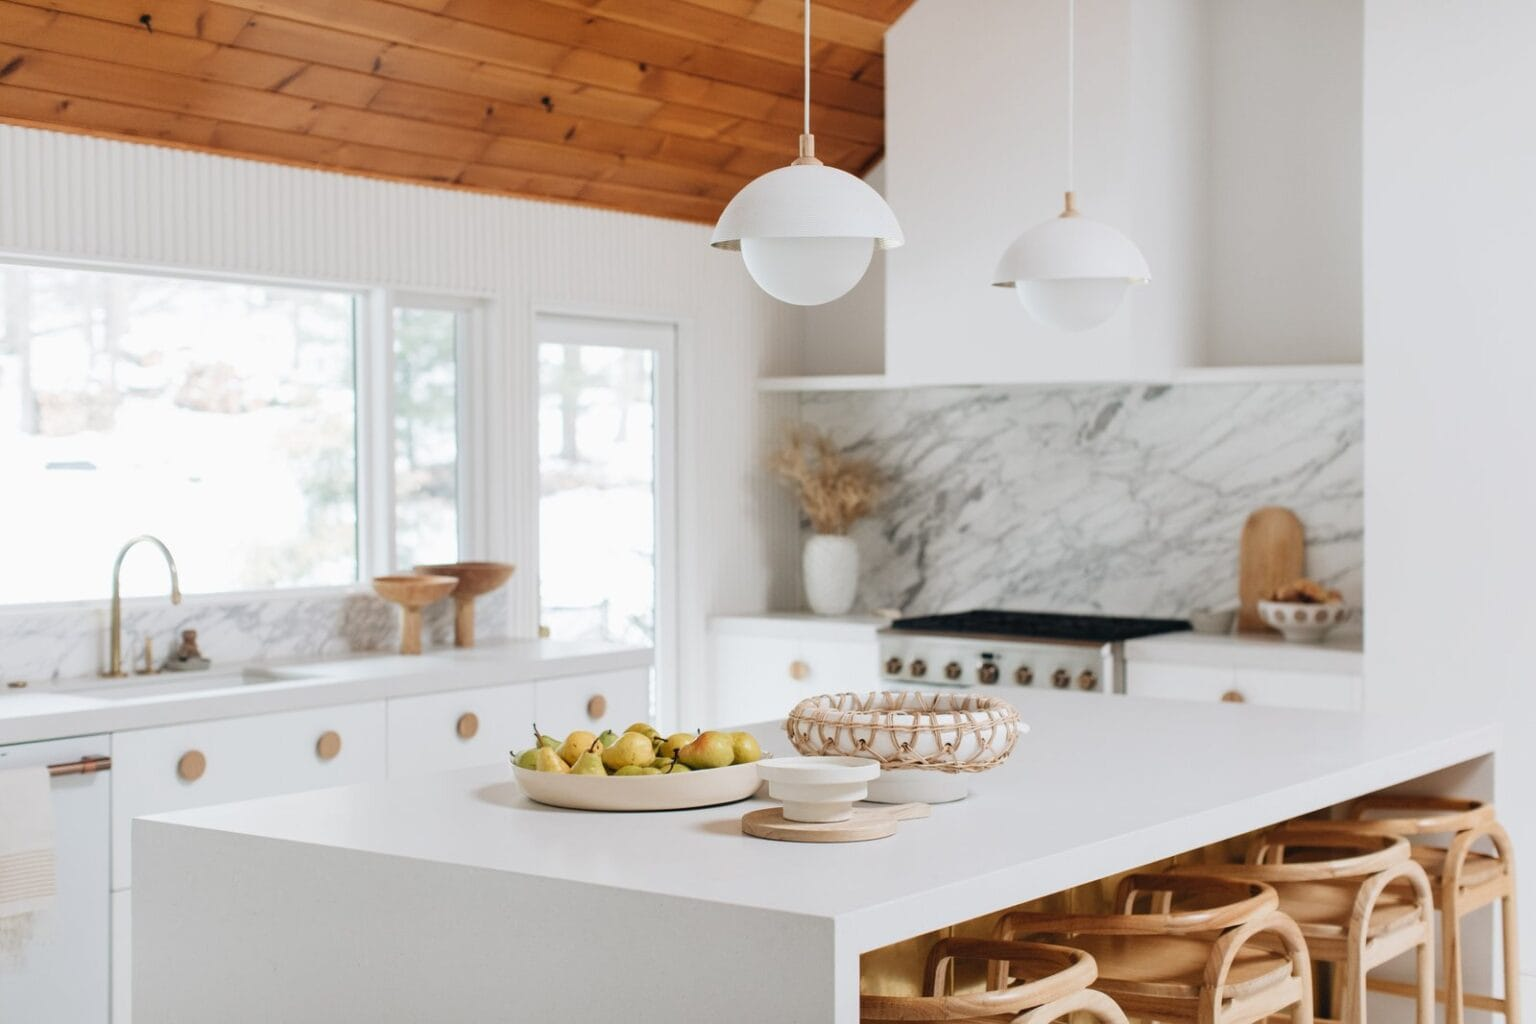 the-whole-exterior-wall-of-the-kitchen-was-re-framed-to-include-two-glass-doors-and-one-extra-long-picture-window-to-bring-in-an-abundance-of-natural-light